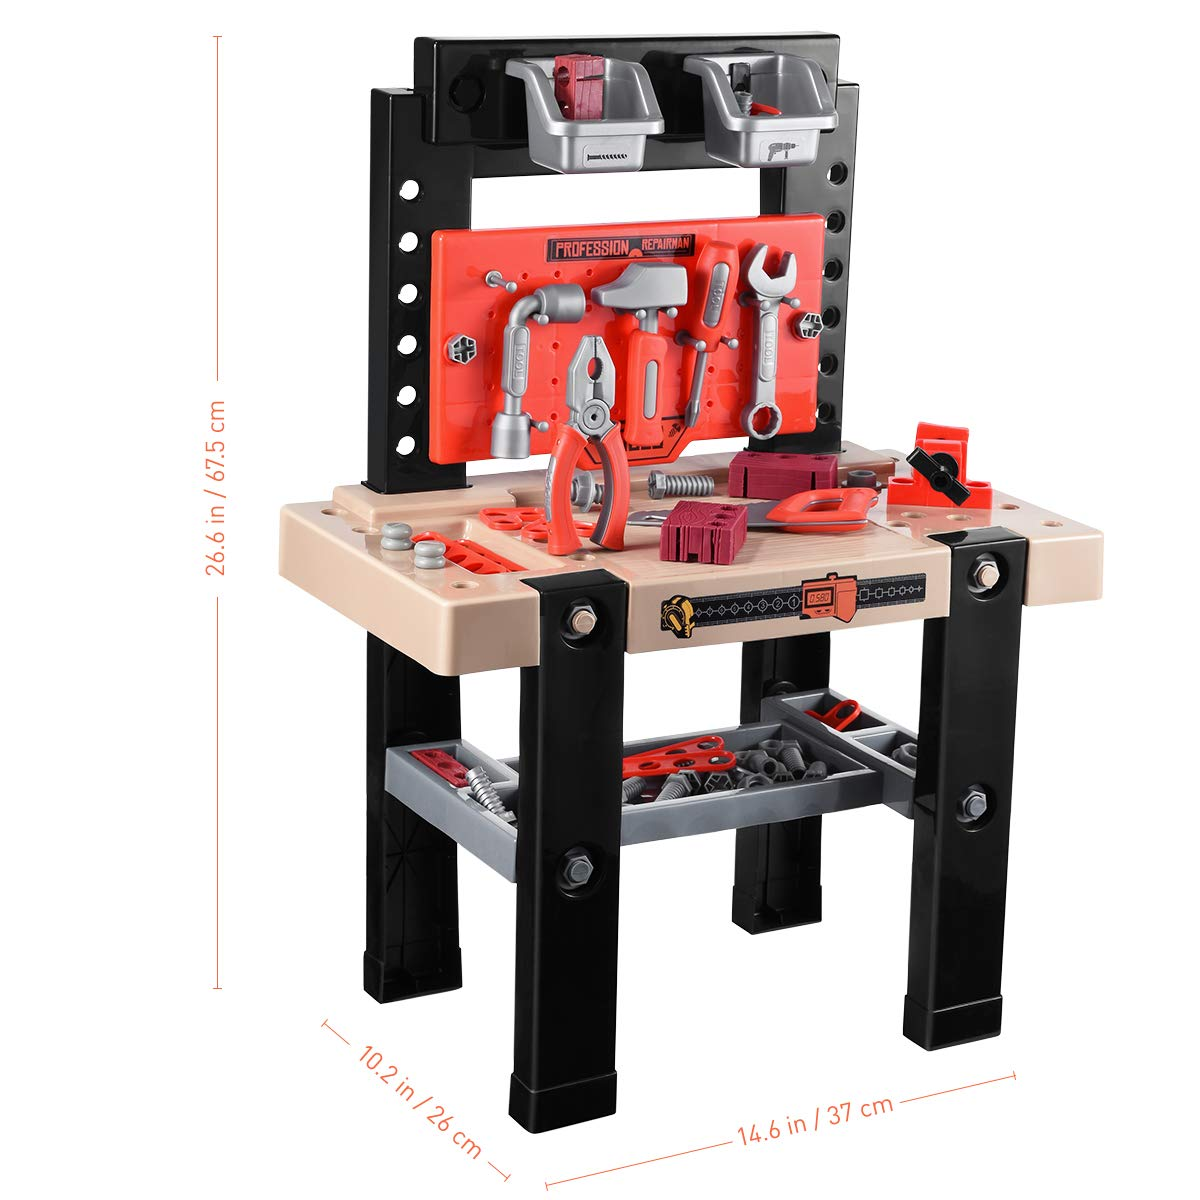 iBaseToy Toy Tool Bench, Kids Power Workbench, 91Piece Construction Toy Bench Set with Electric Drill, Educational Play & Pretend Play Workbench for Toddlers by iBaseToy (Image #6)